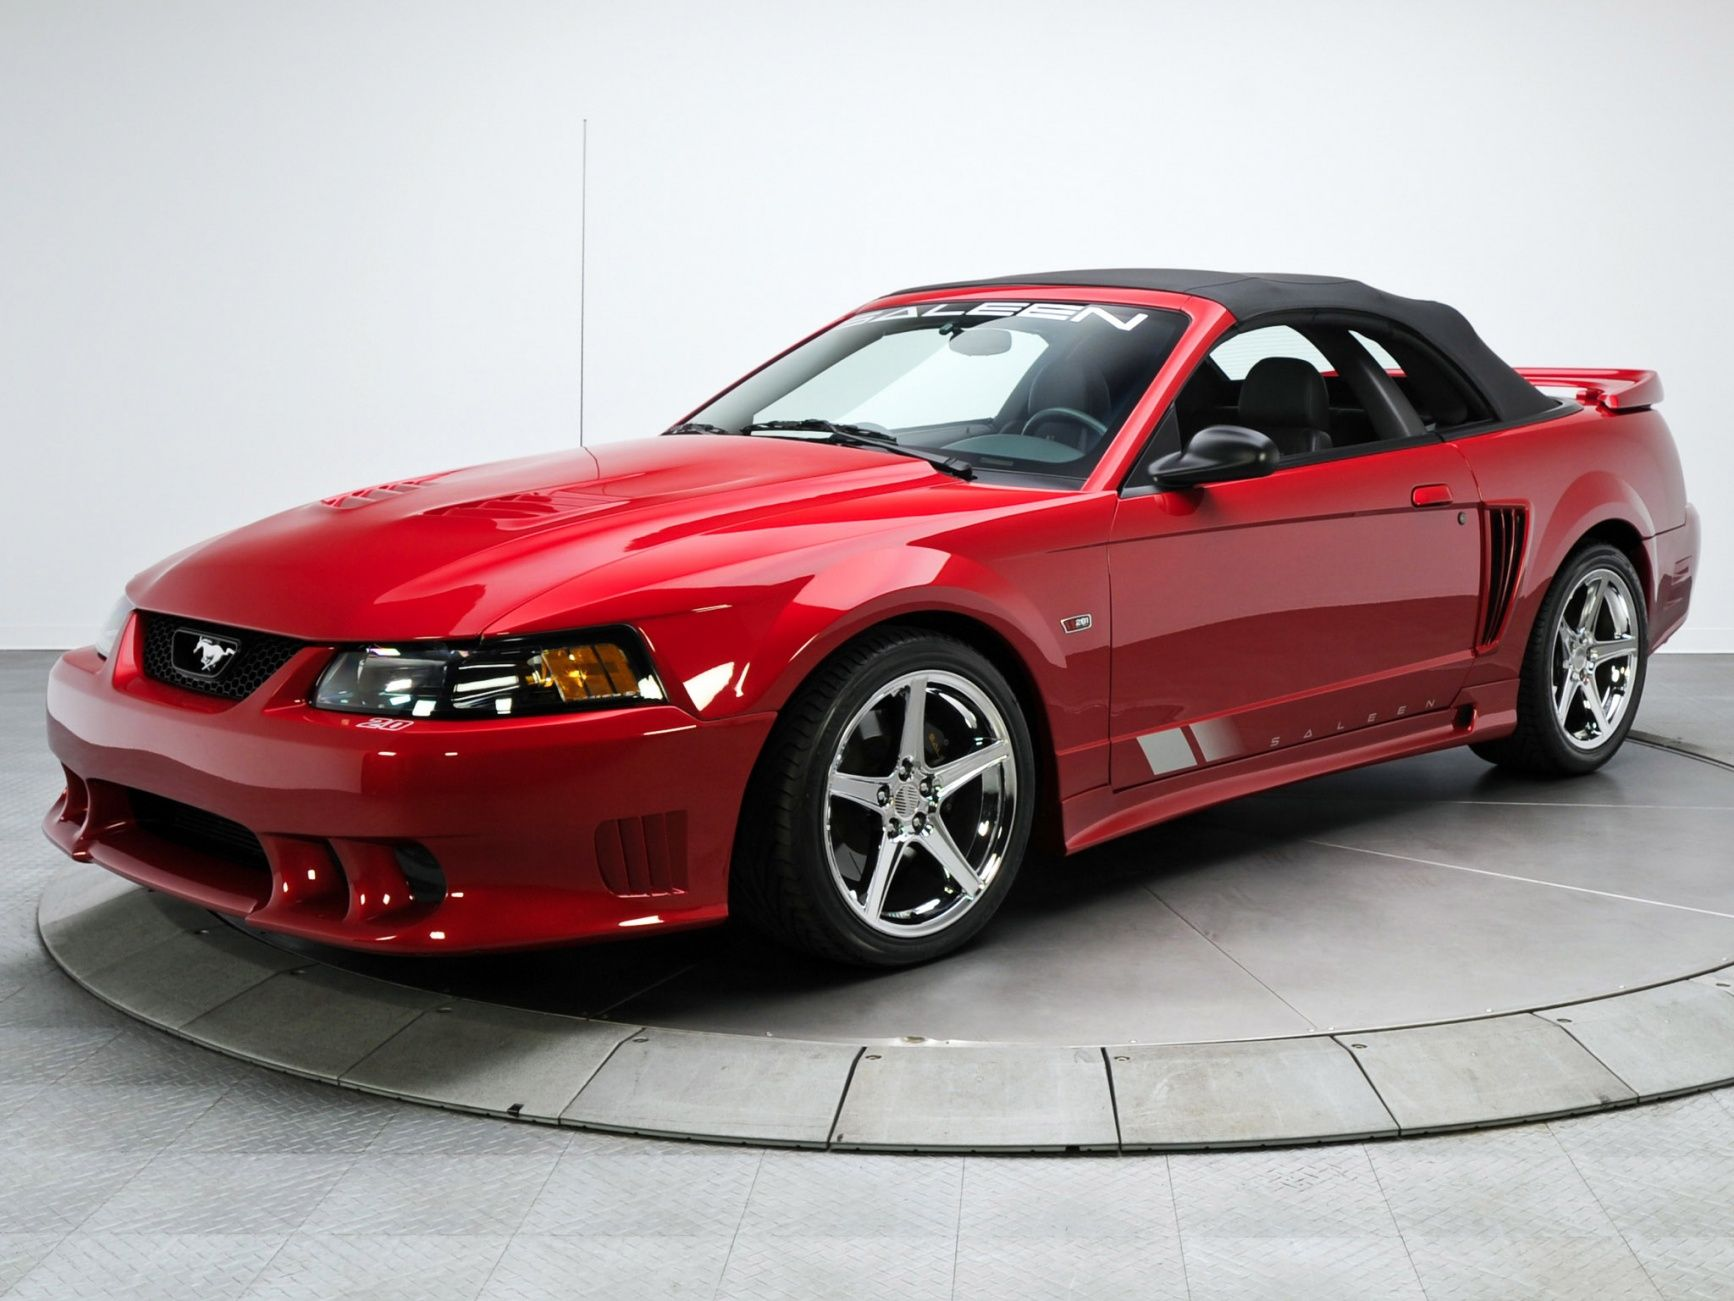 2004 Ford Mustang Saleen Sc 281 Speedster Ford Mustang Saleen Mustang Convertible Ford Mustang Convertible